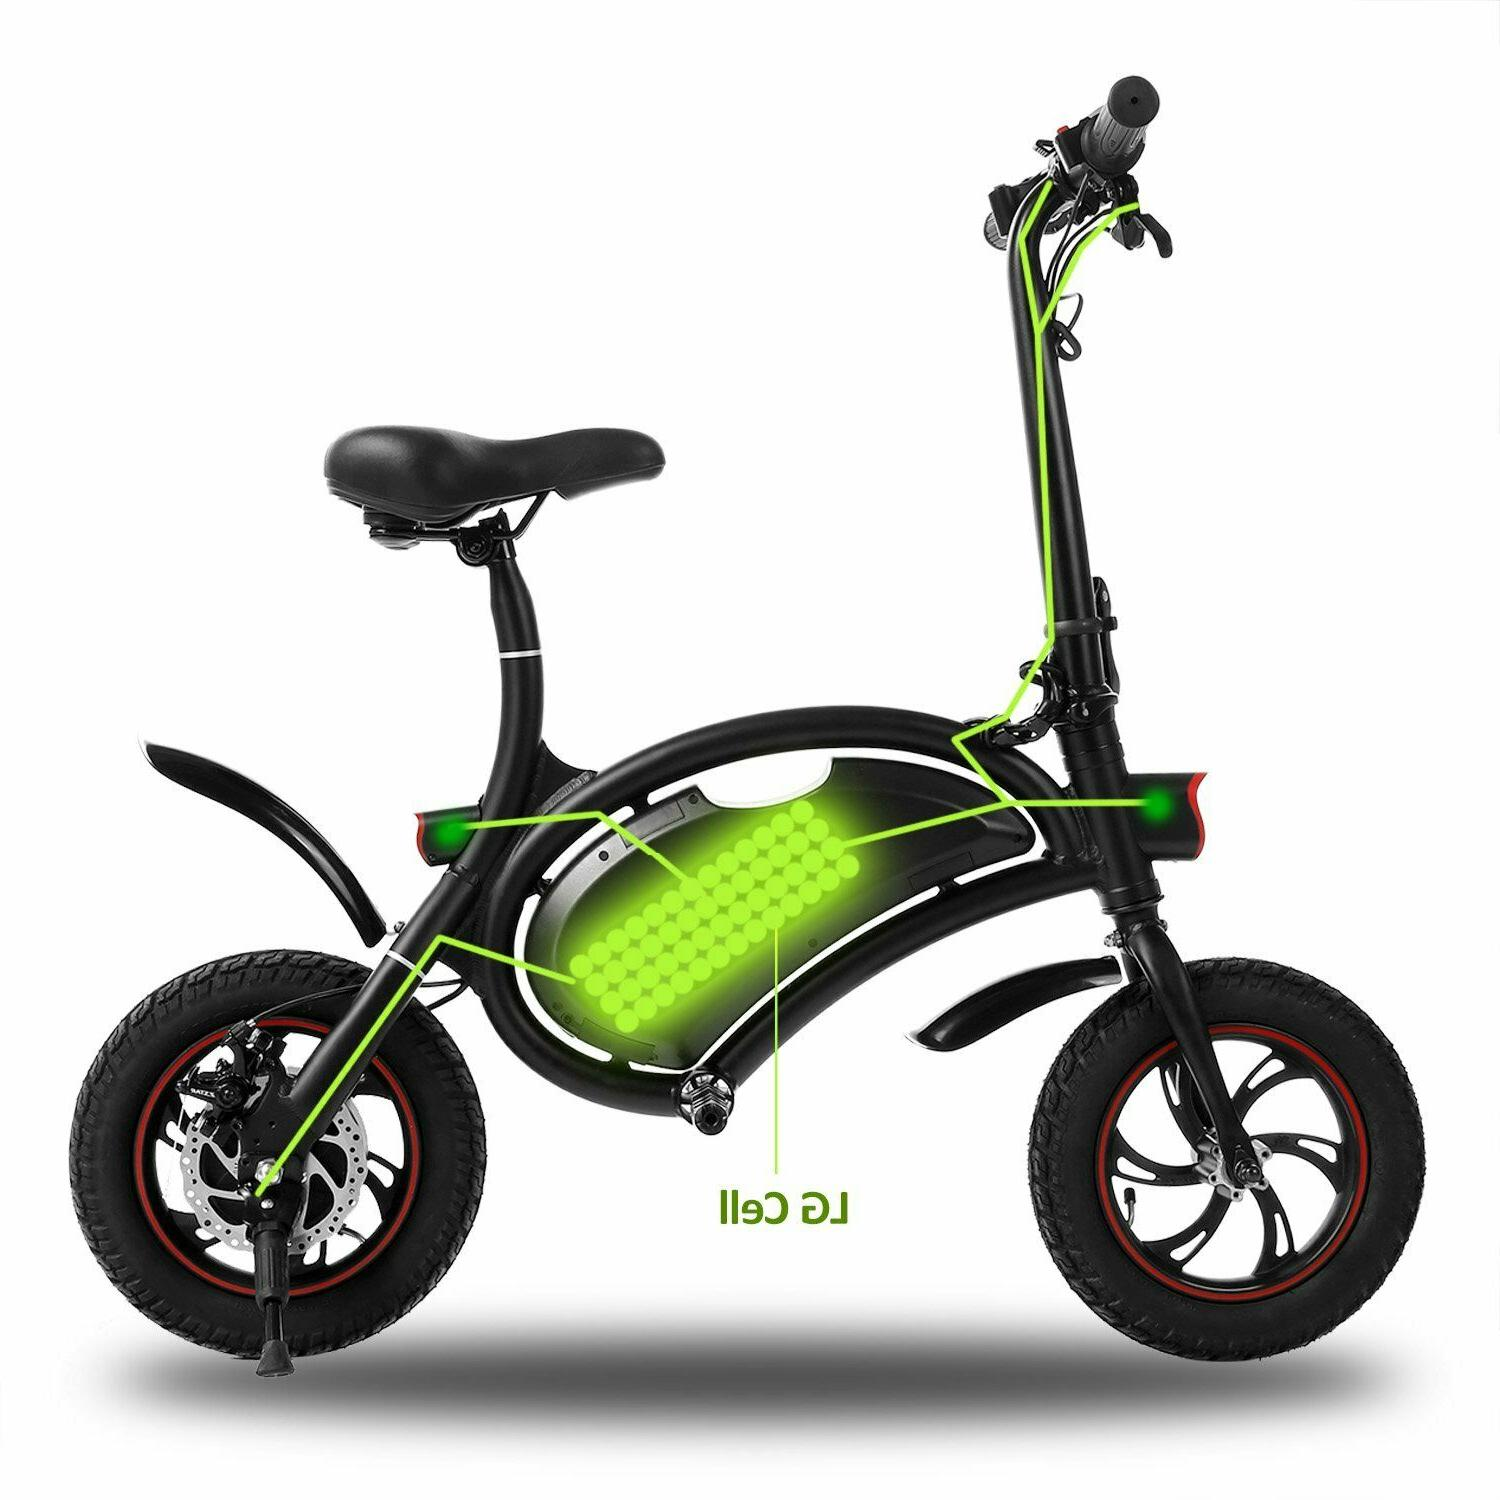 ANCHEER 350W Ebike with 12 Mile Range,